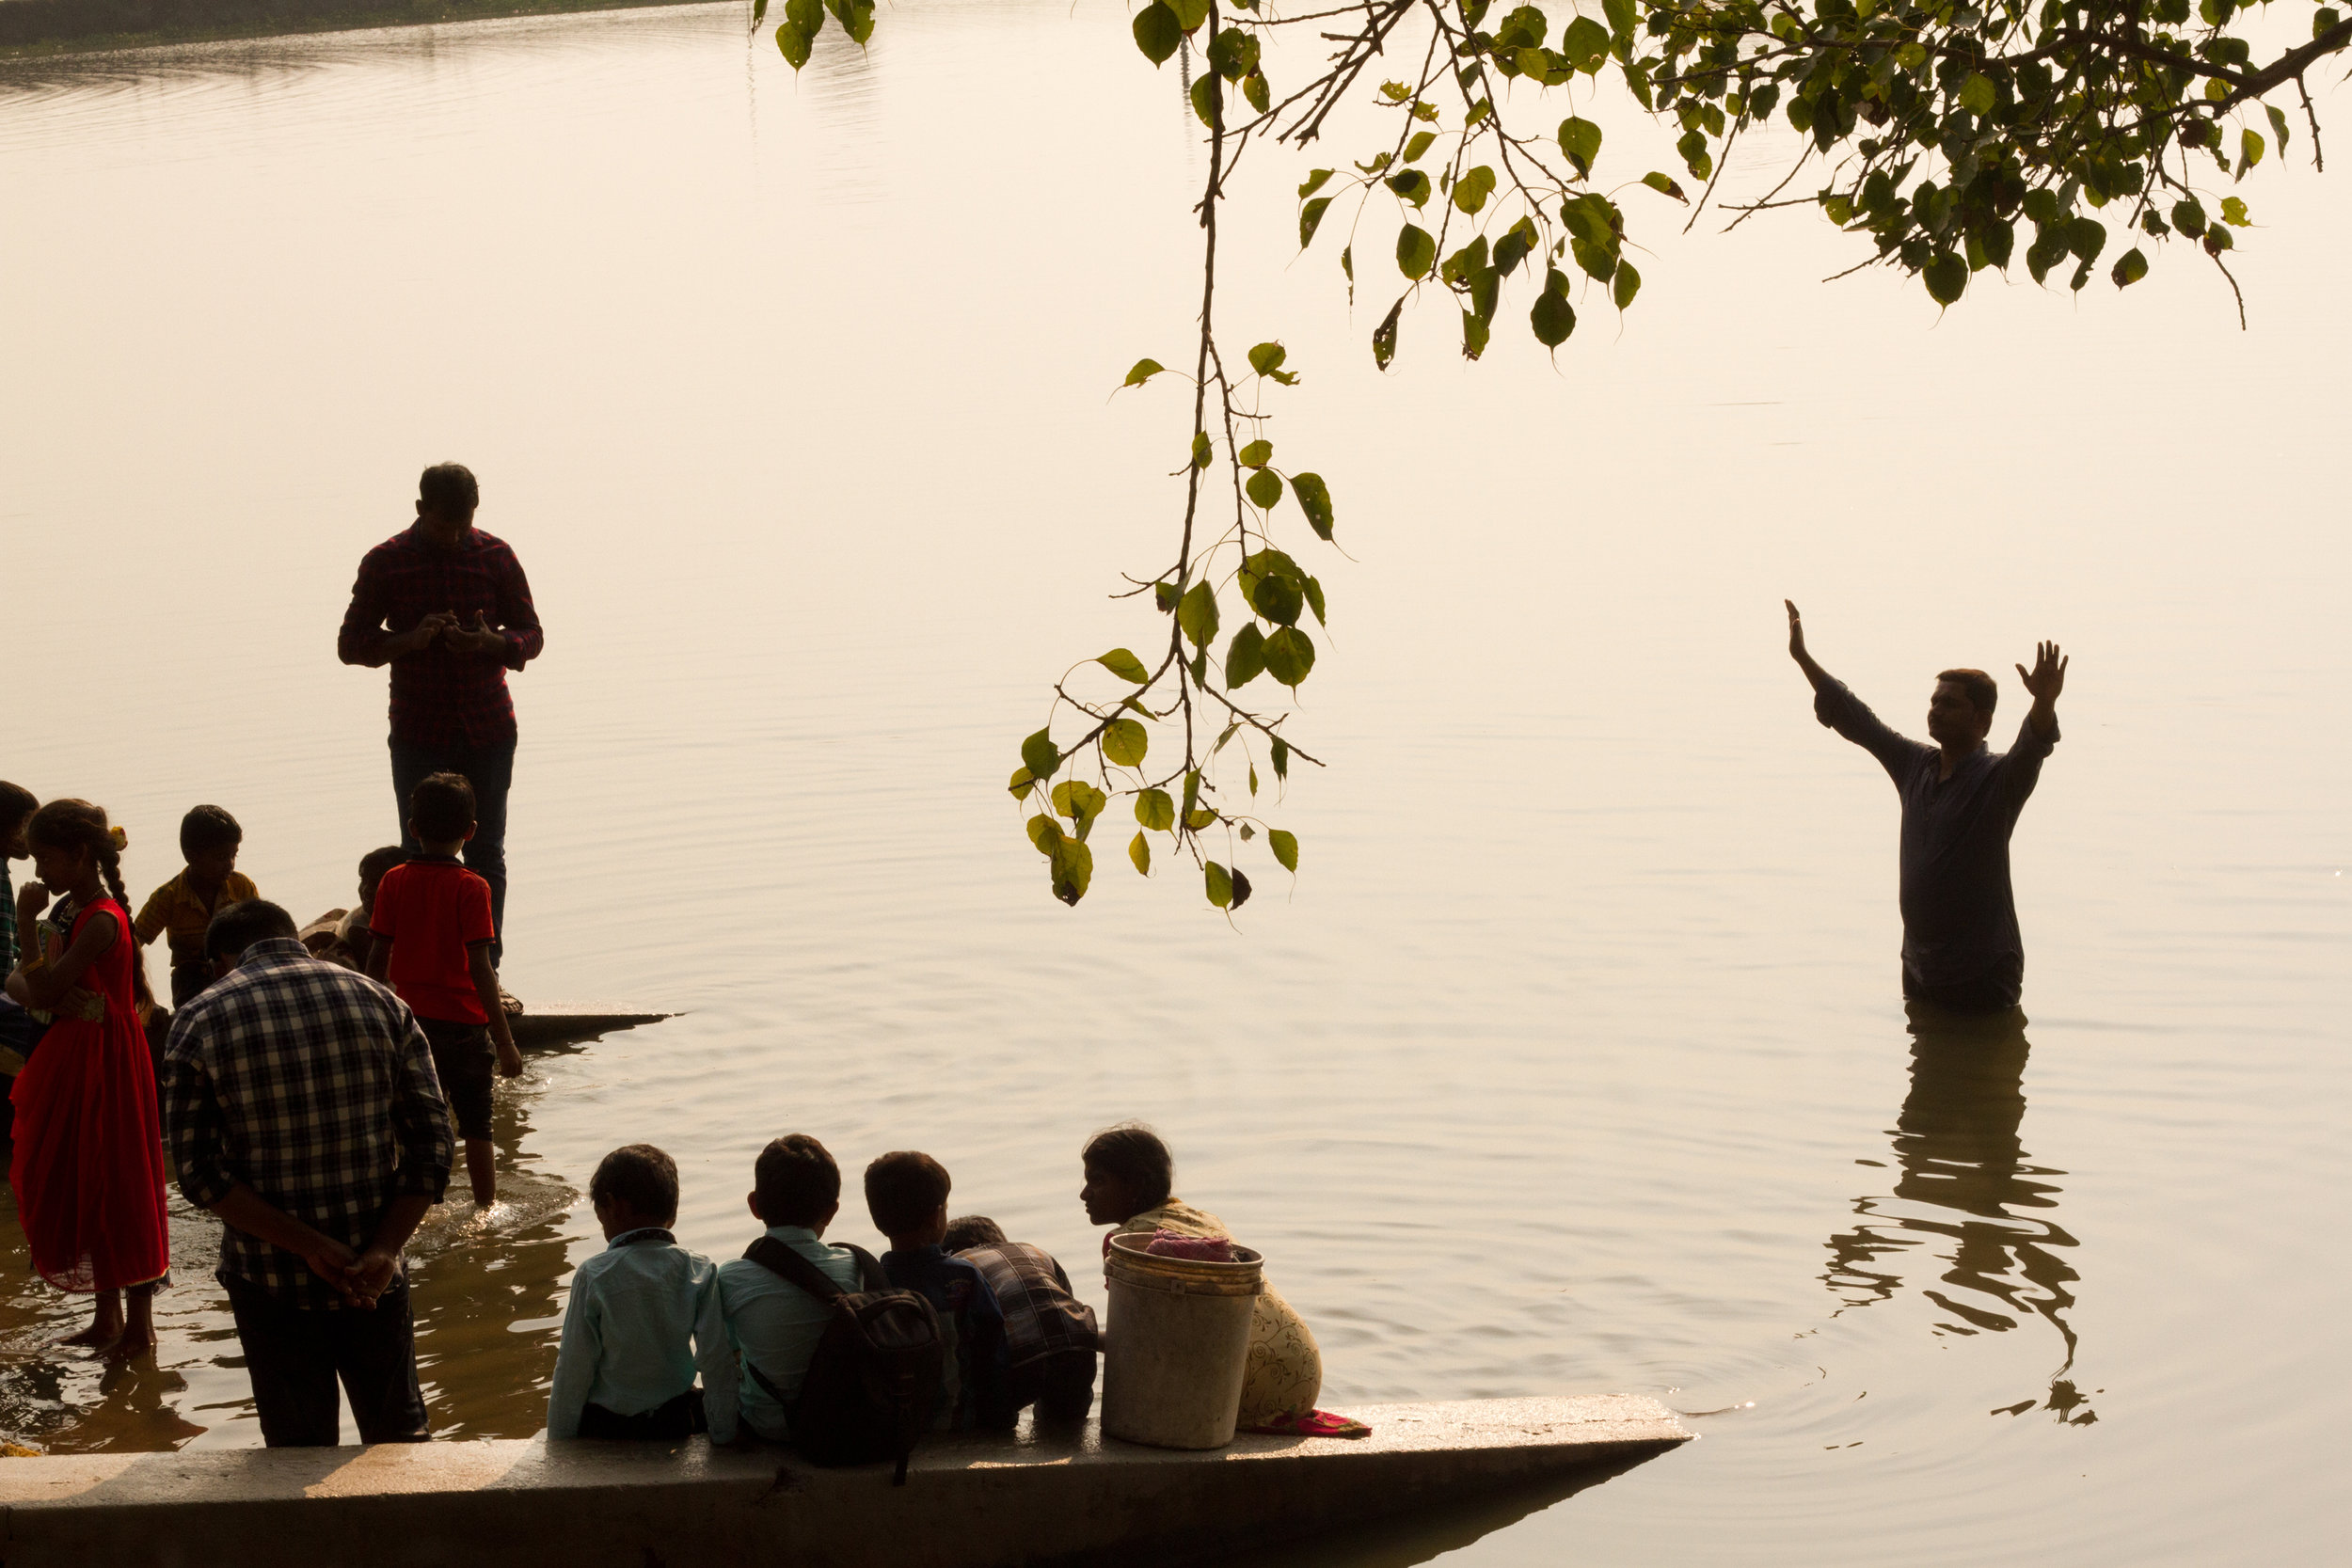 Baptism in a small lake. Believers say Amen and Hallelujah and raise their hands a lot.